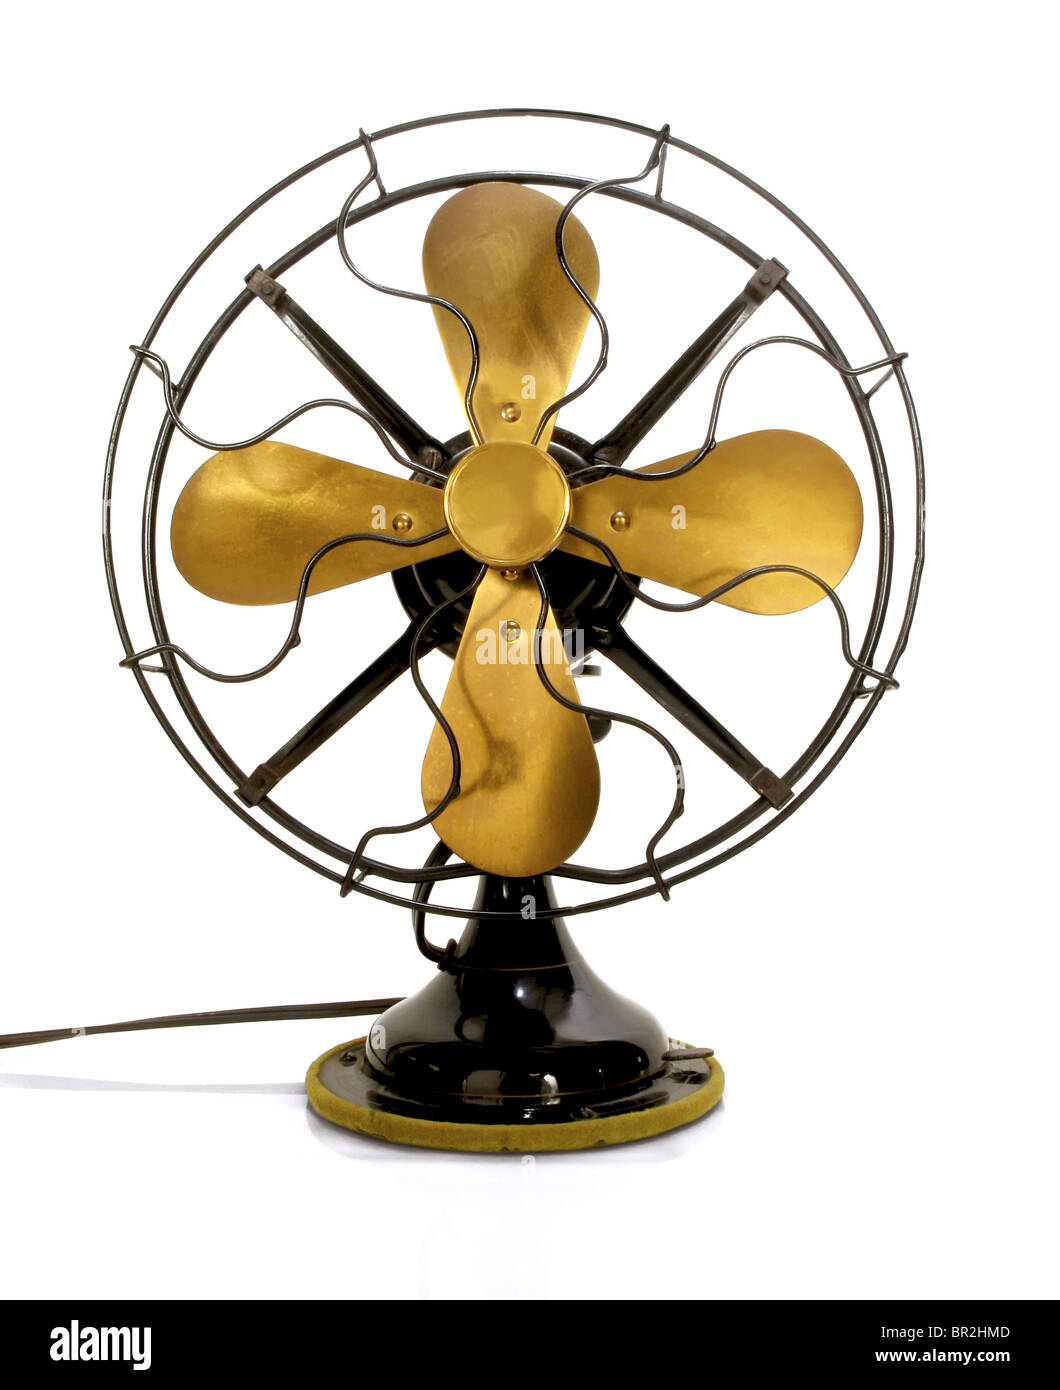 Beautiful black antique brass fan on a white background - Stock Image